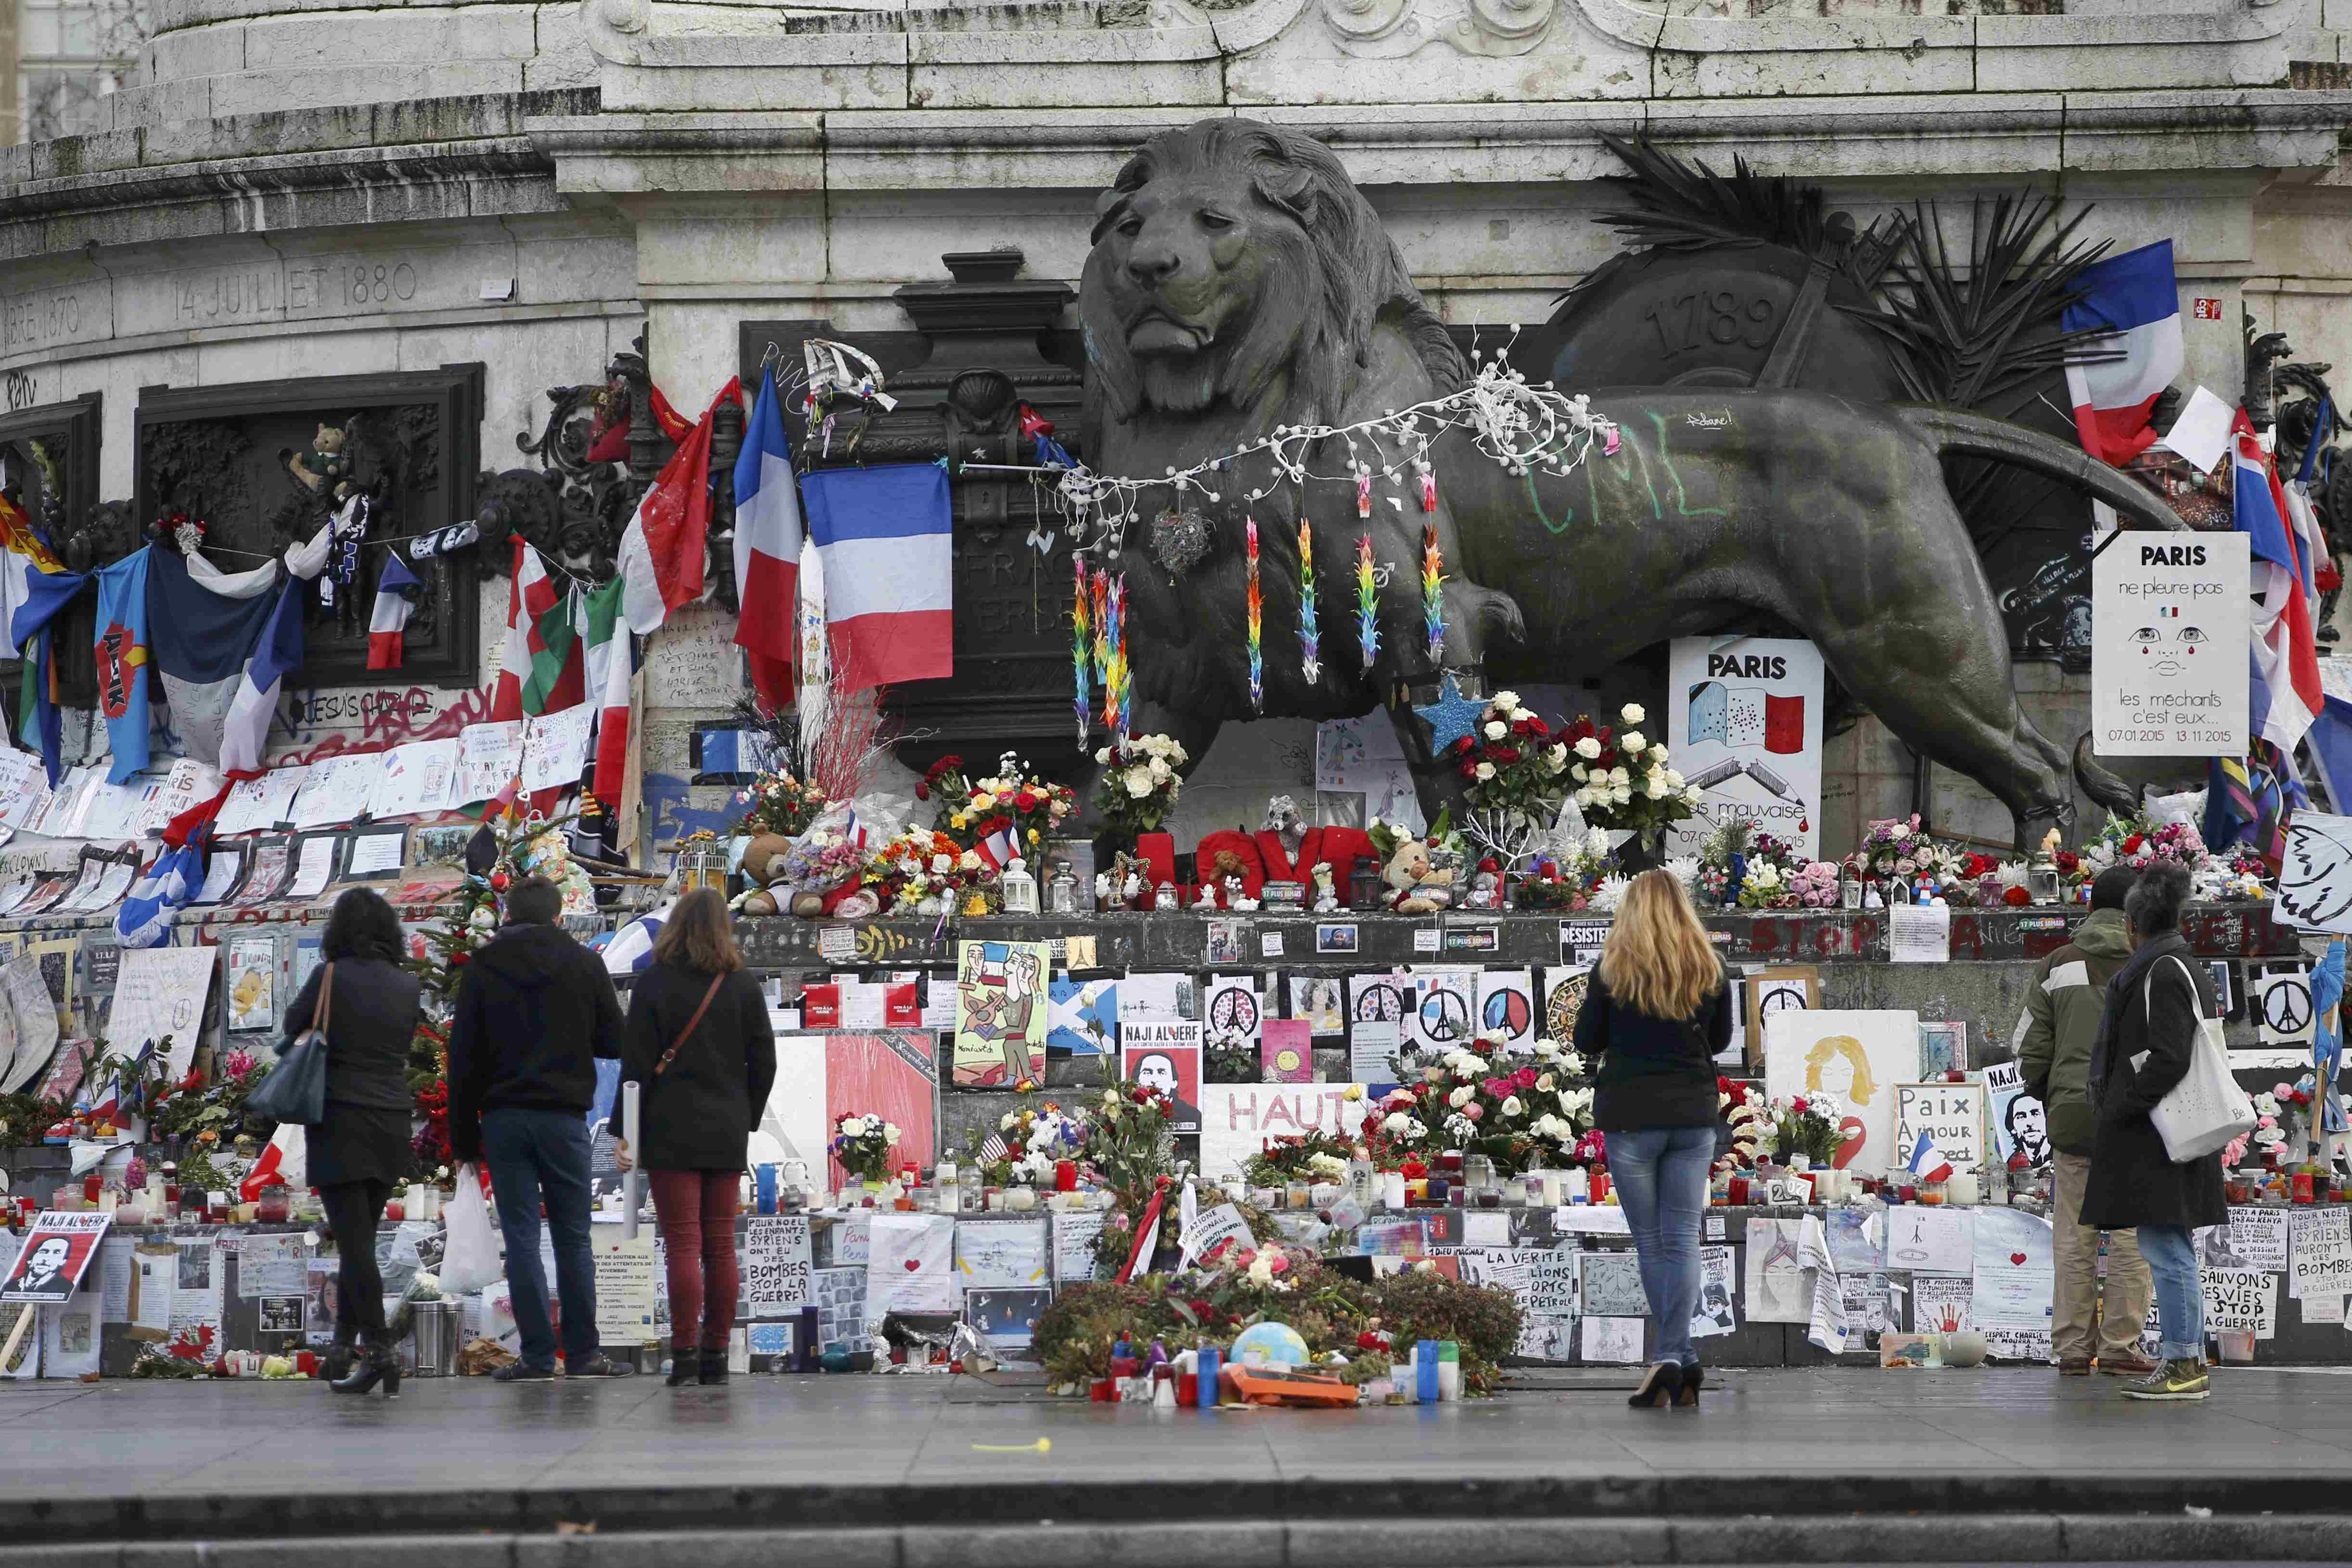 People look at flowers and messages to pay tribute to the victims of last year's January and November shooting attacks near the statue at the Place de la Republique in Paris on Jan. 6, 2016.